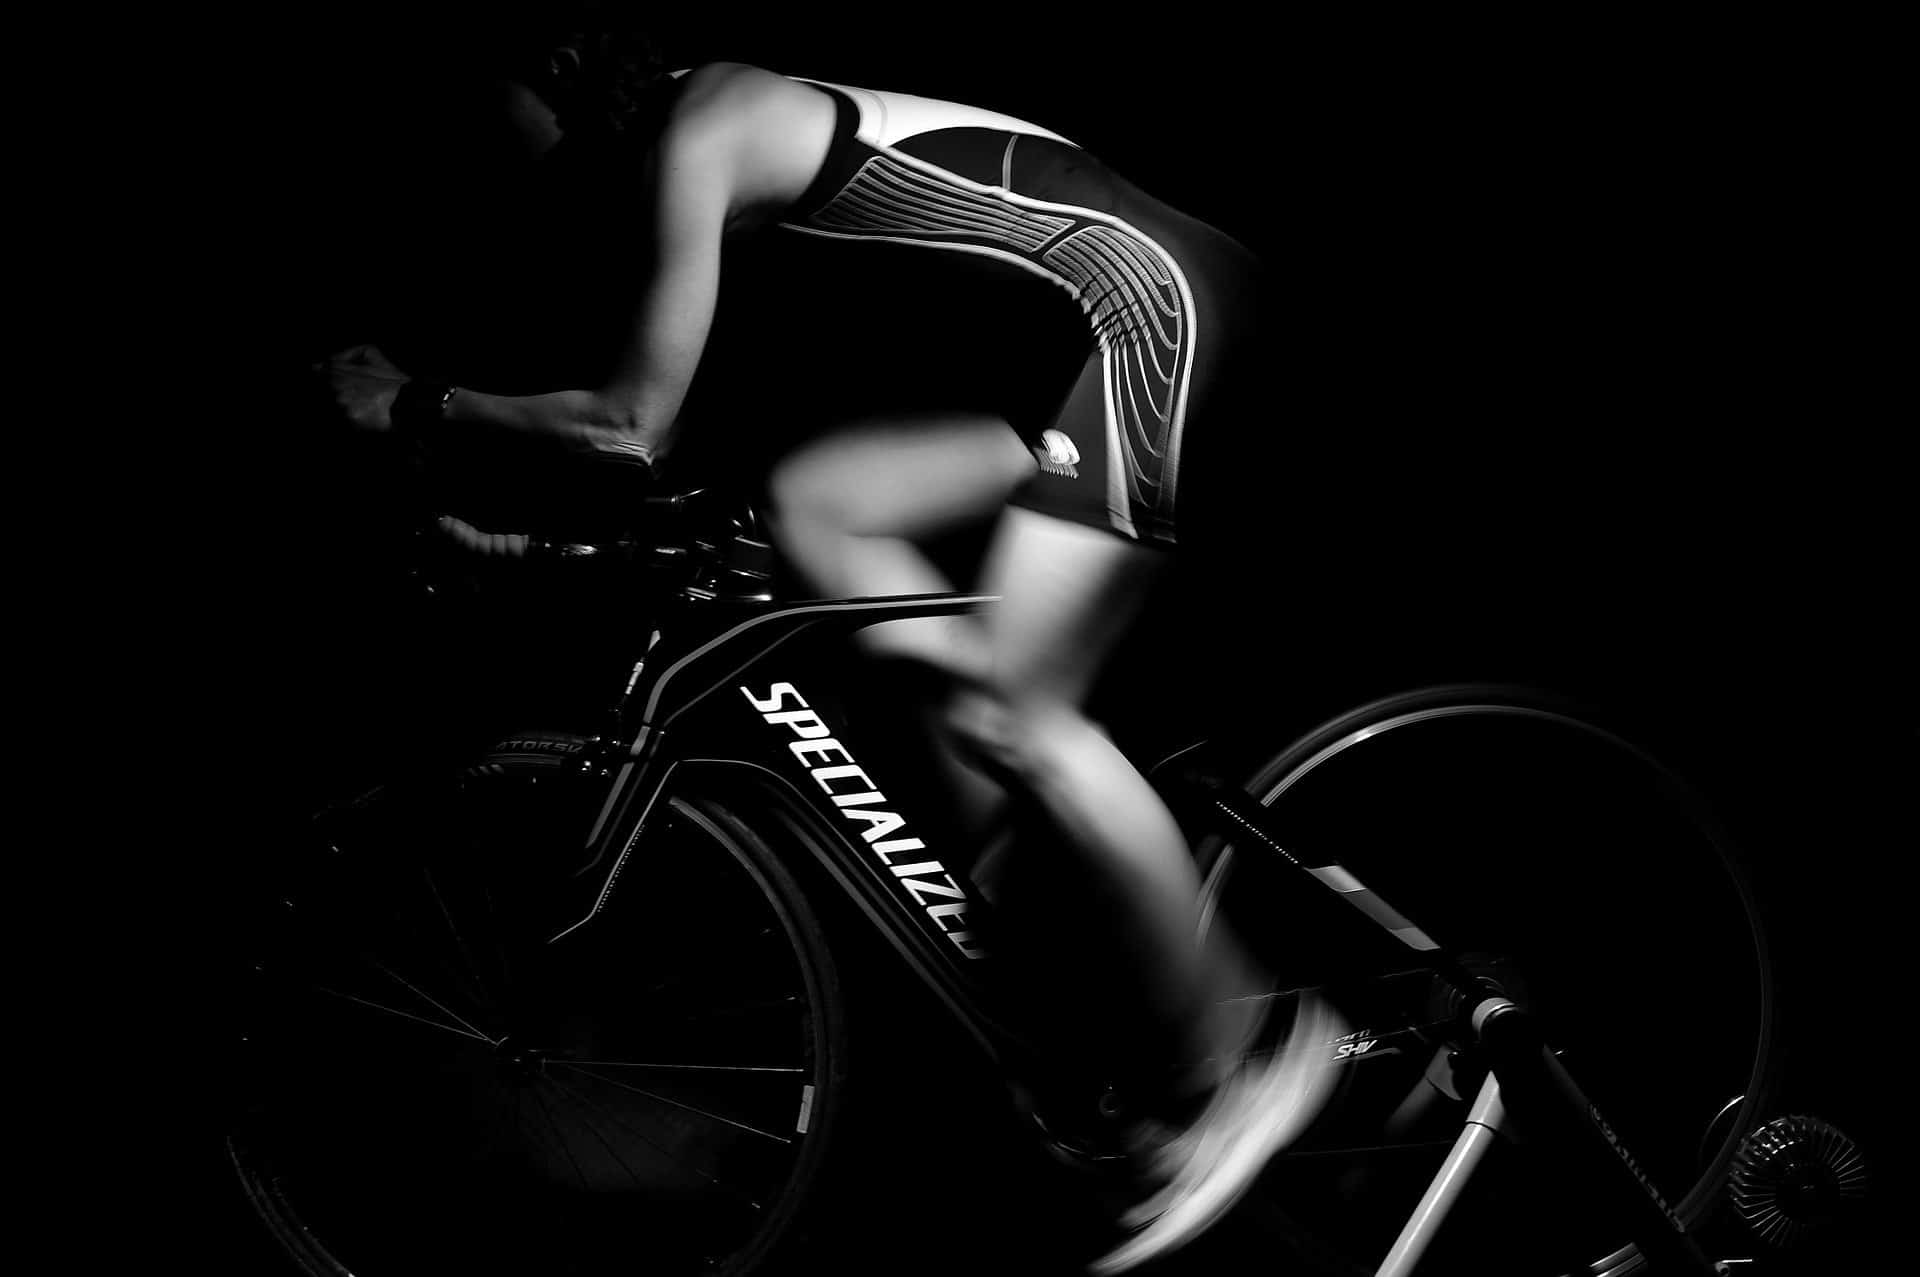 Training https://pixabay.com/photos/workout-racing-bike-bicycle-bike-713658/